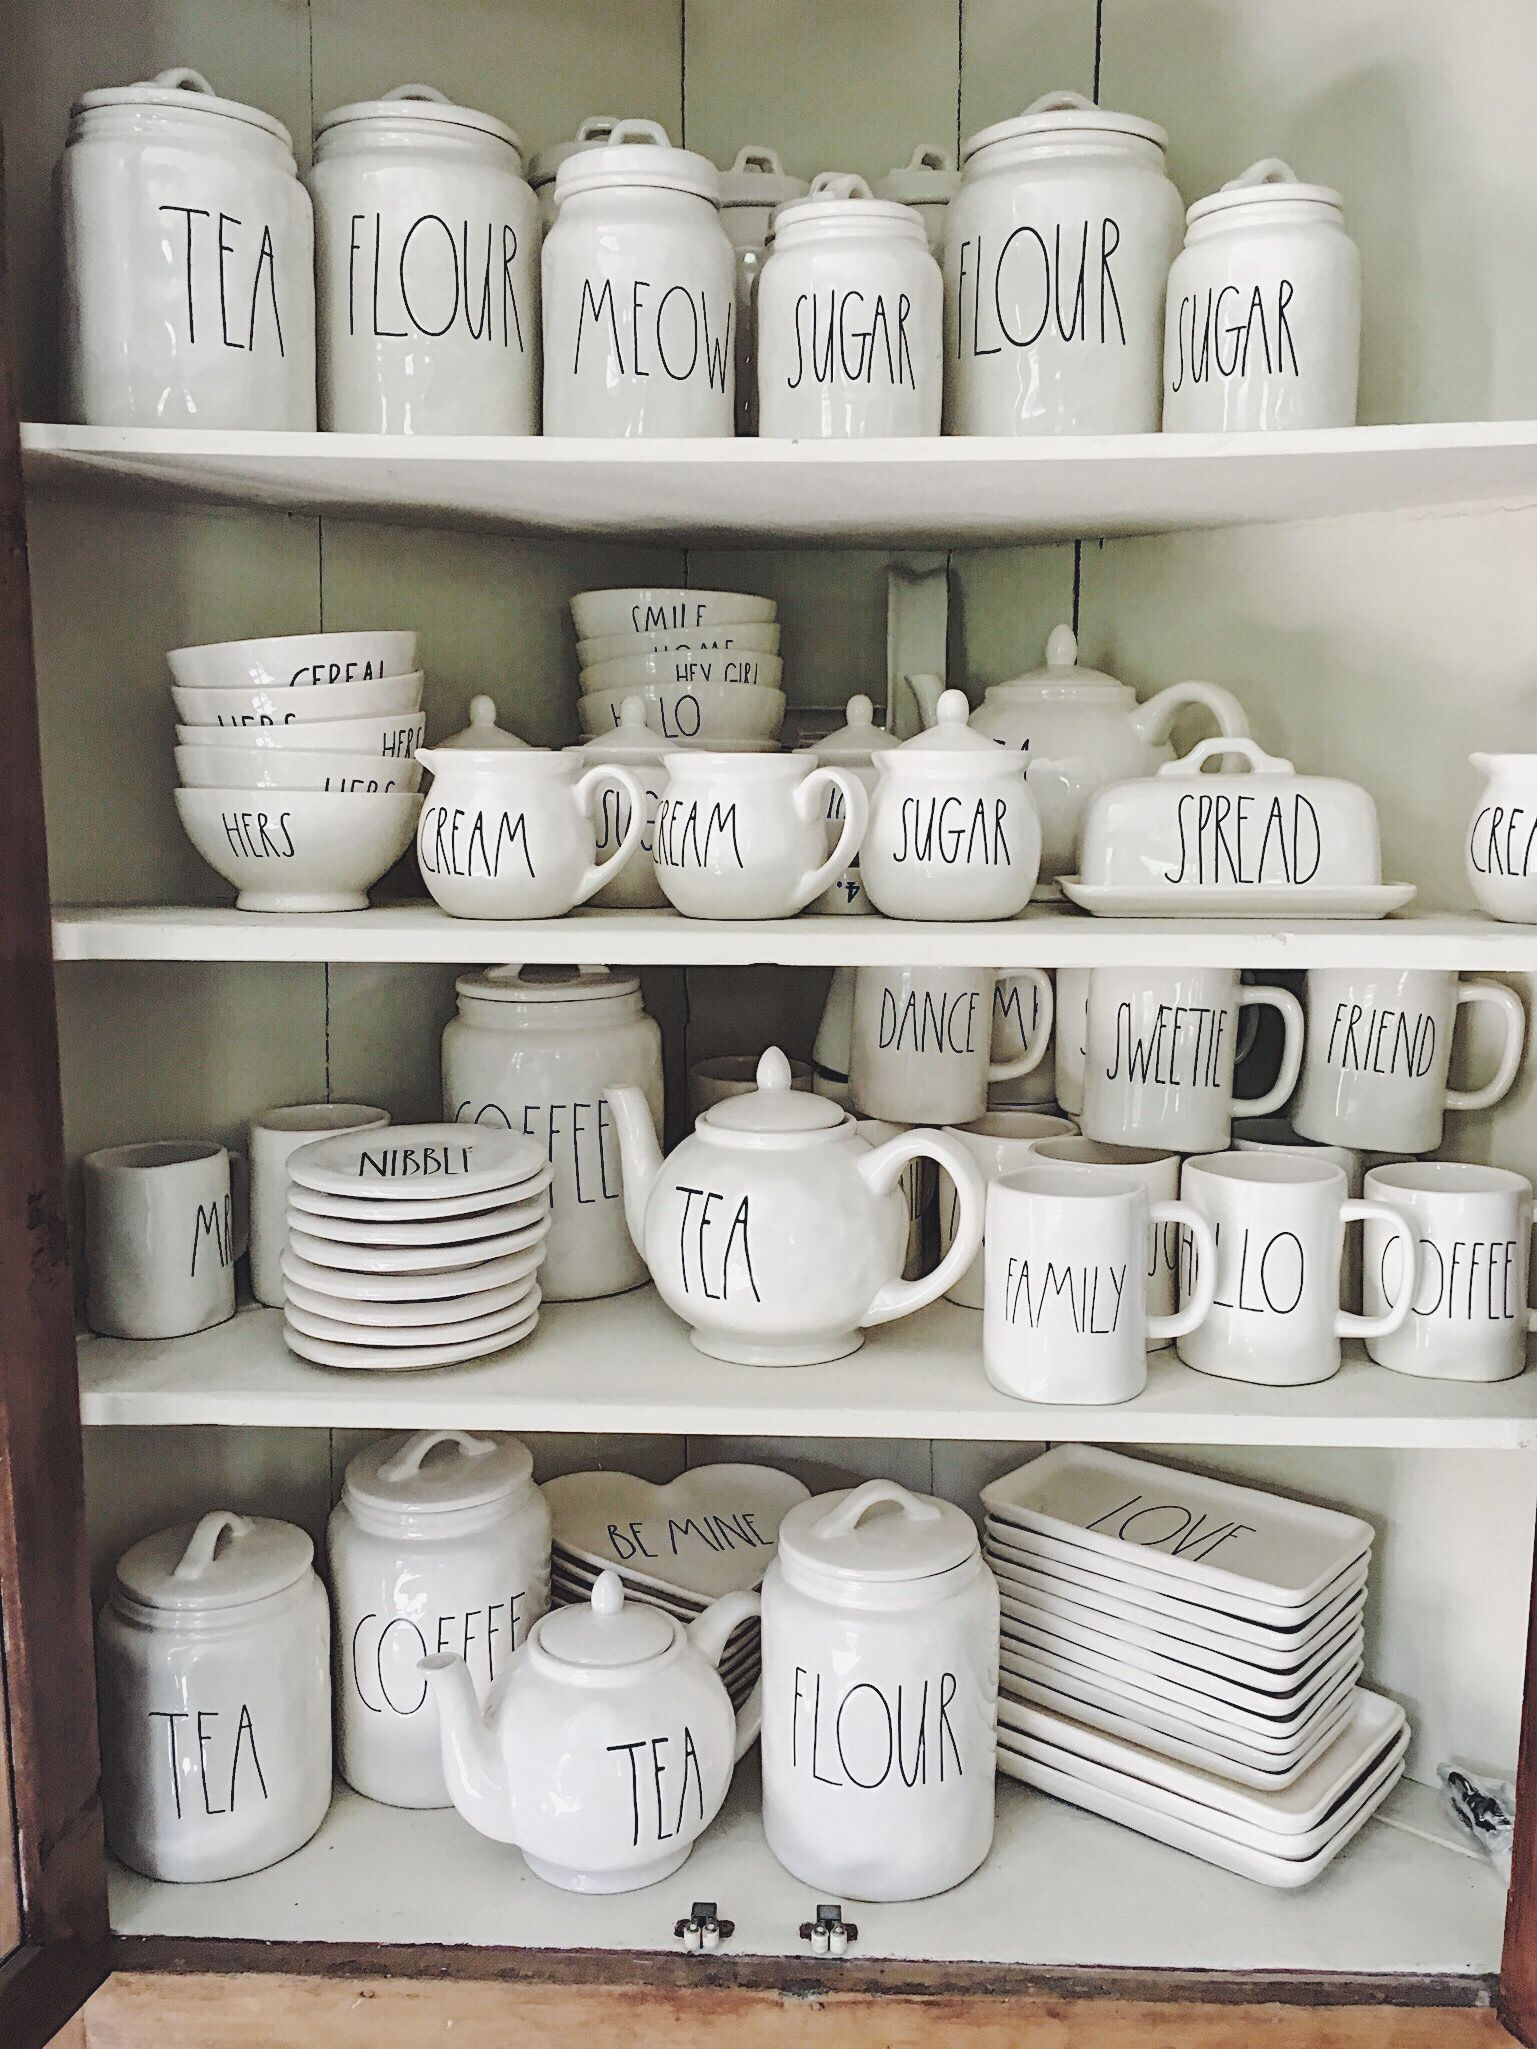 SIX TIPS FOR FINDING RAE DUNN POTTERY | Pottery, Kitchens and ...